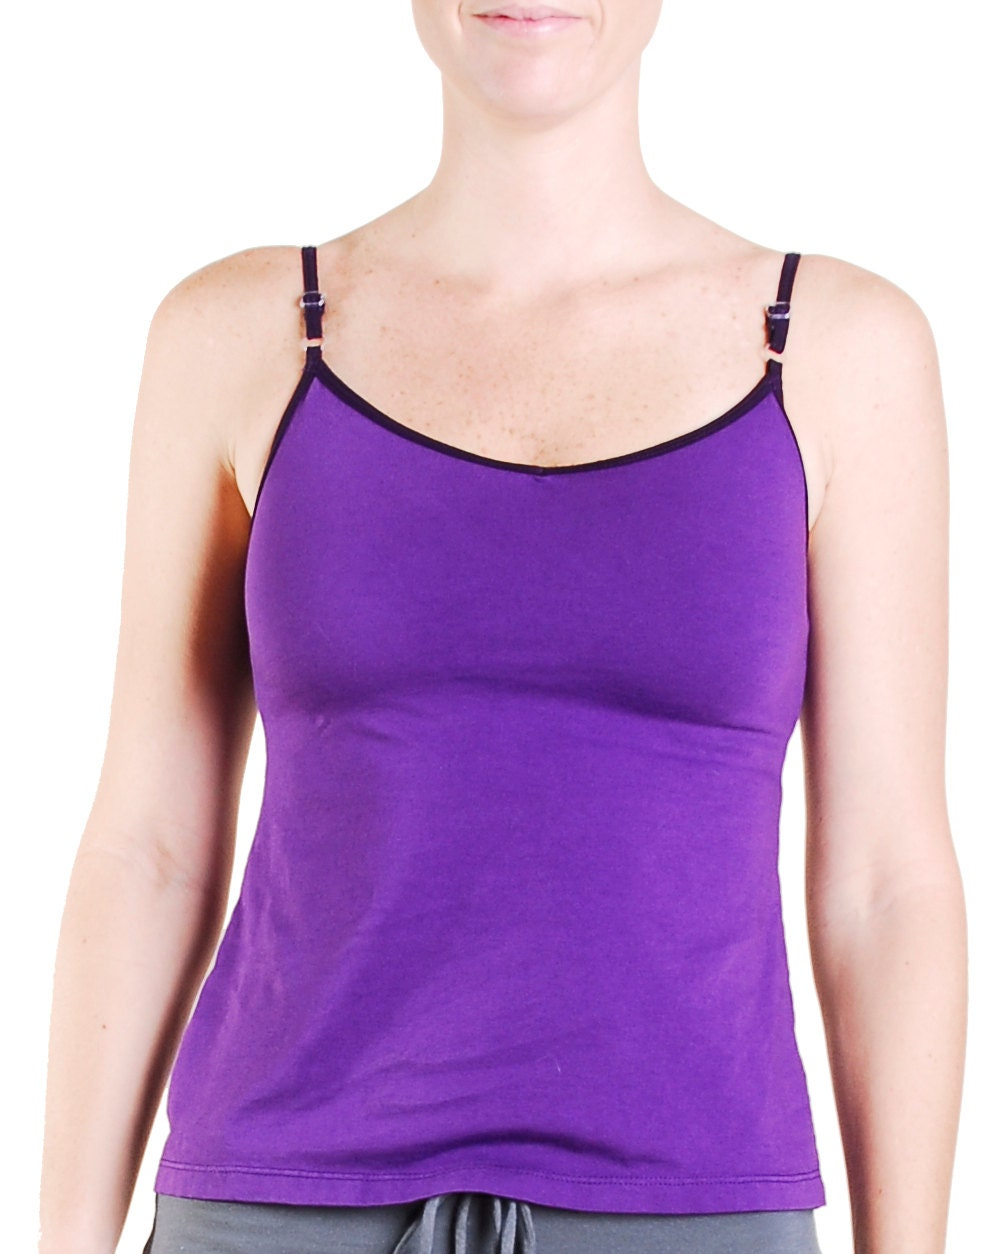 Yoga Tank Top Size Medium Vneck Cami With Built In By